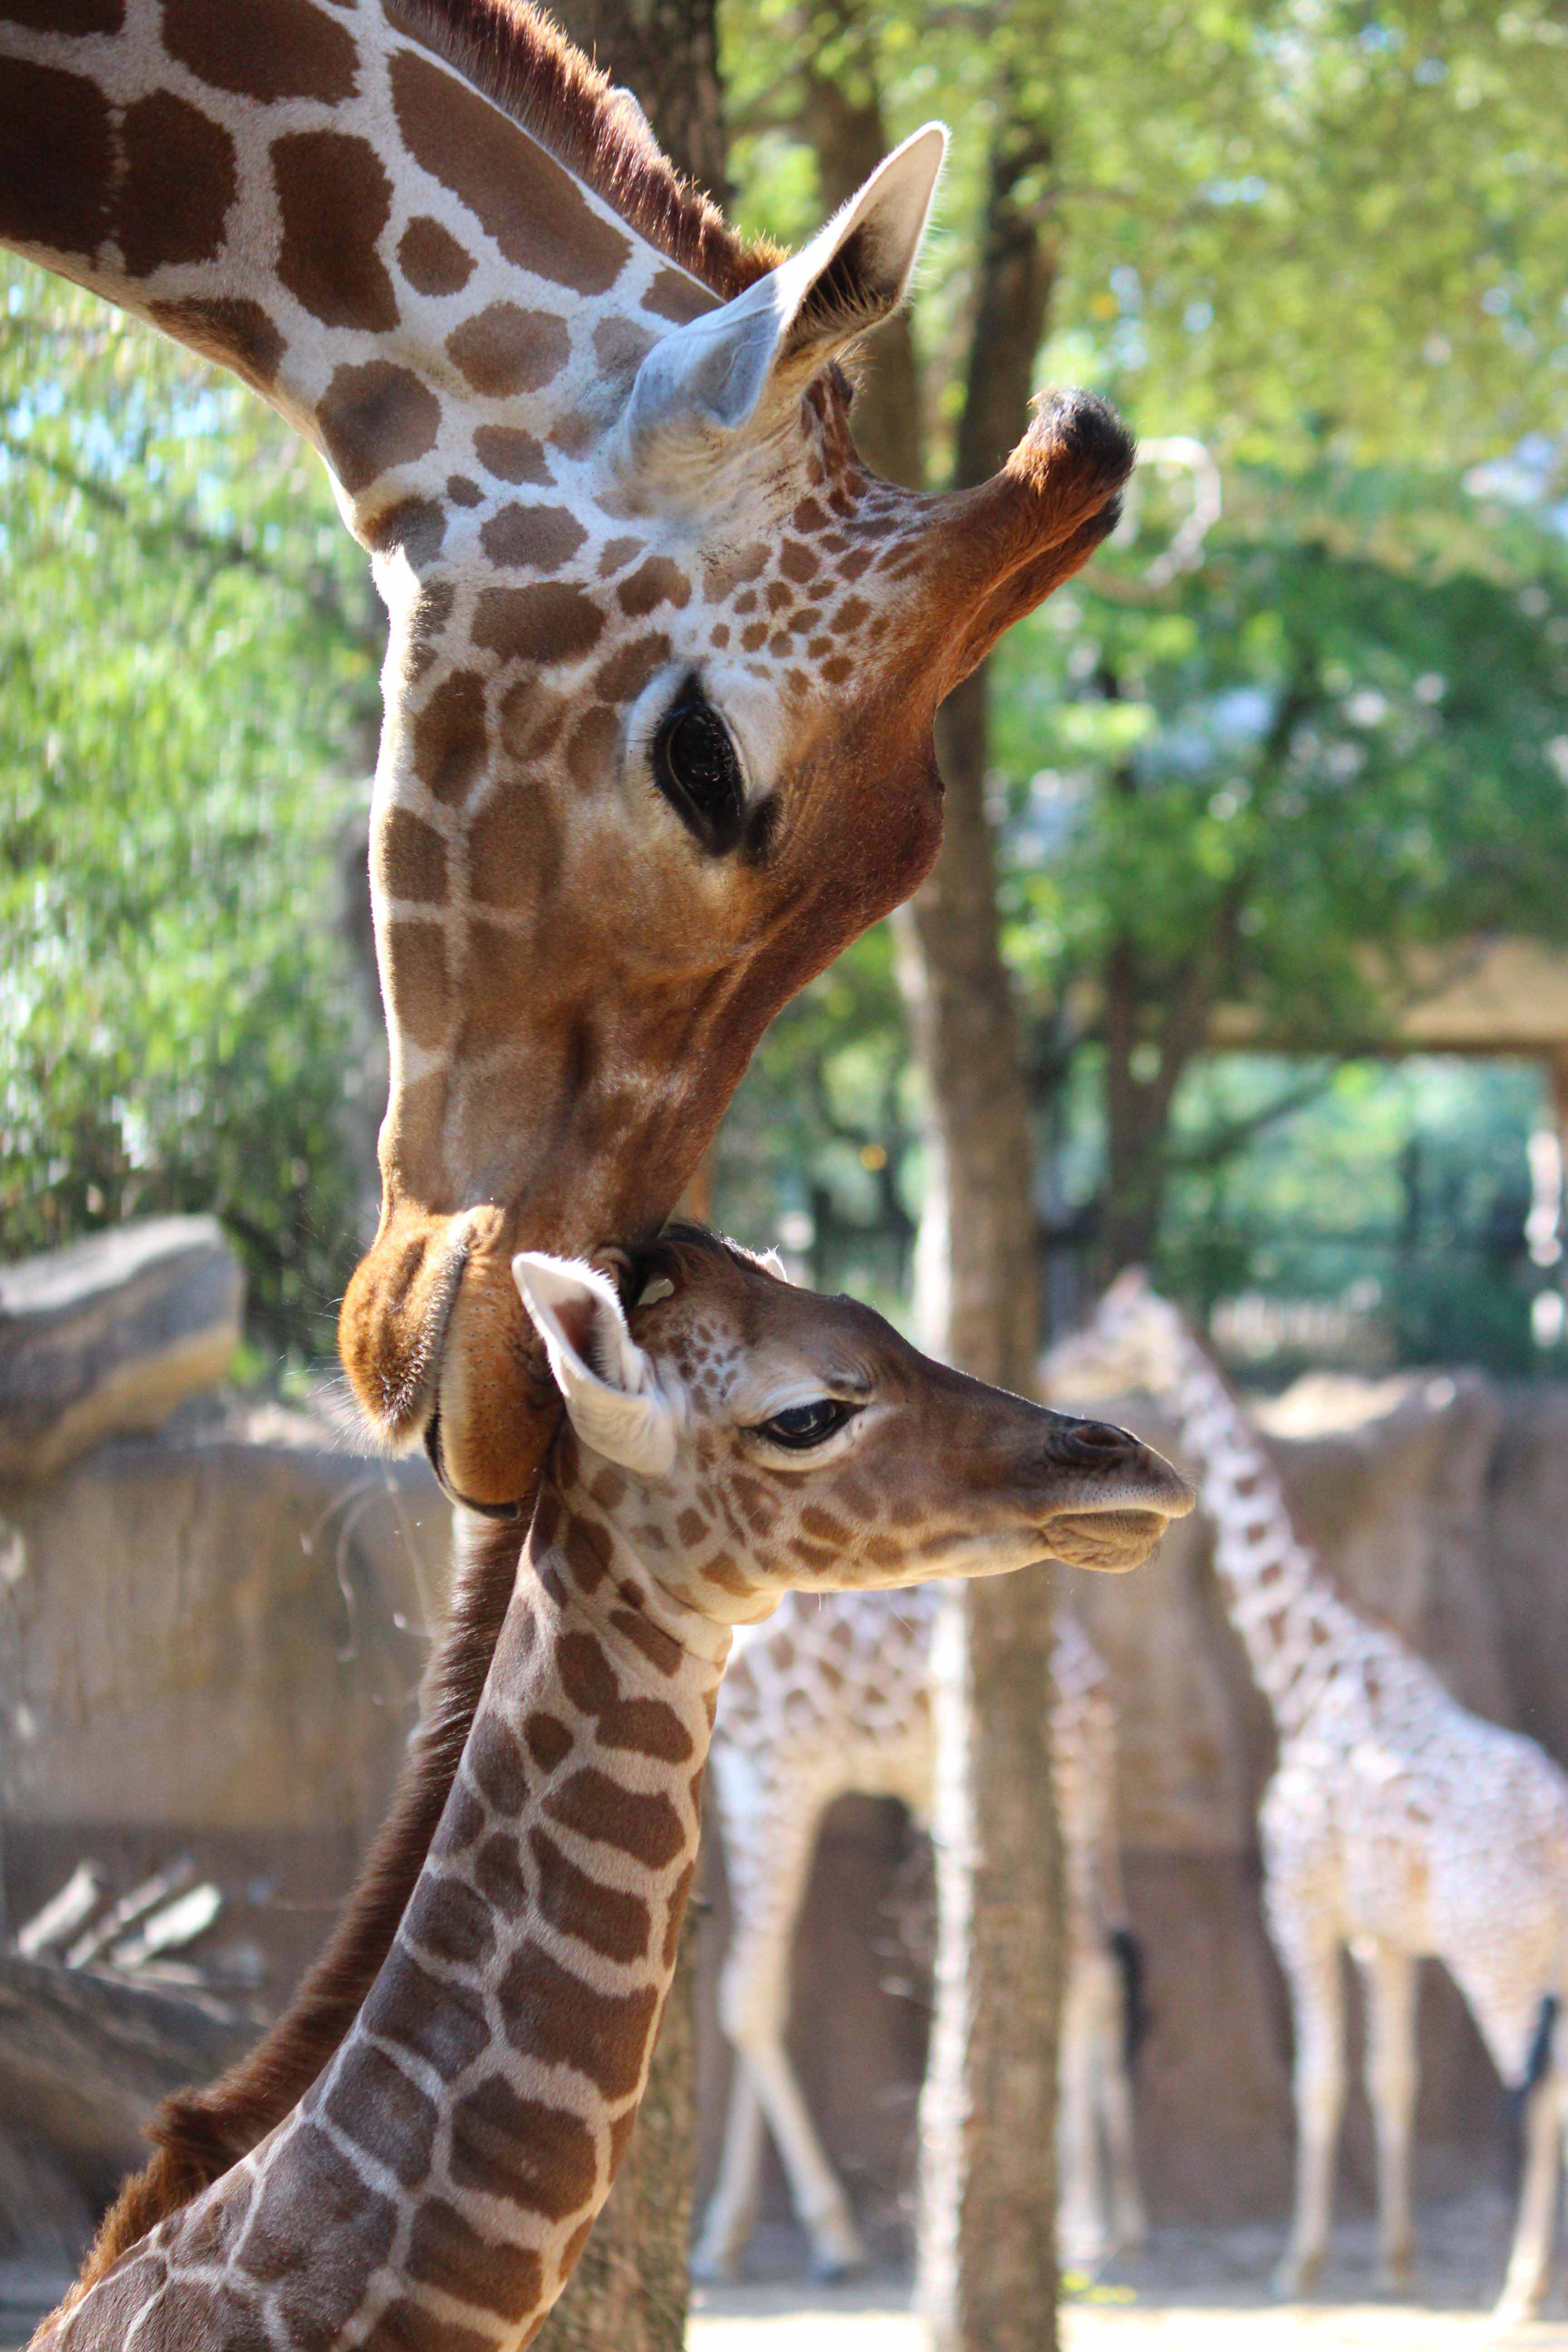 Adult and young reticulated giraffe